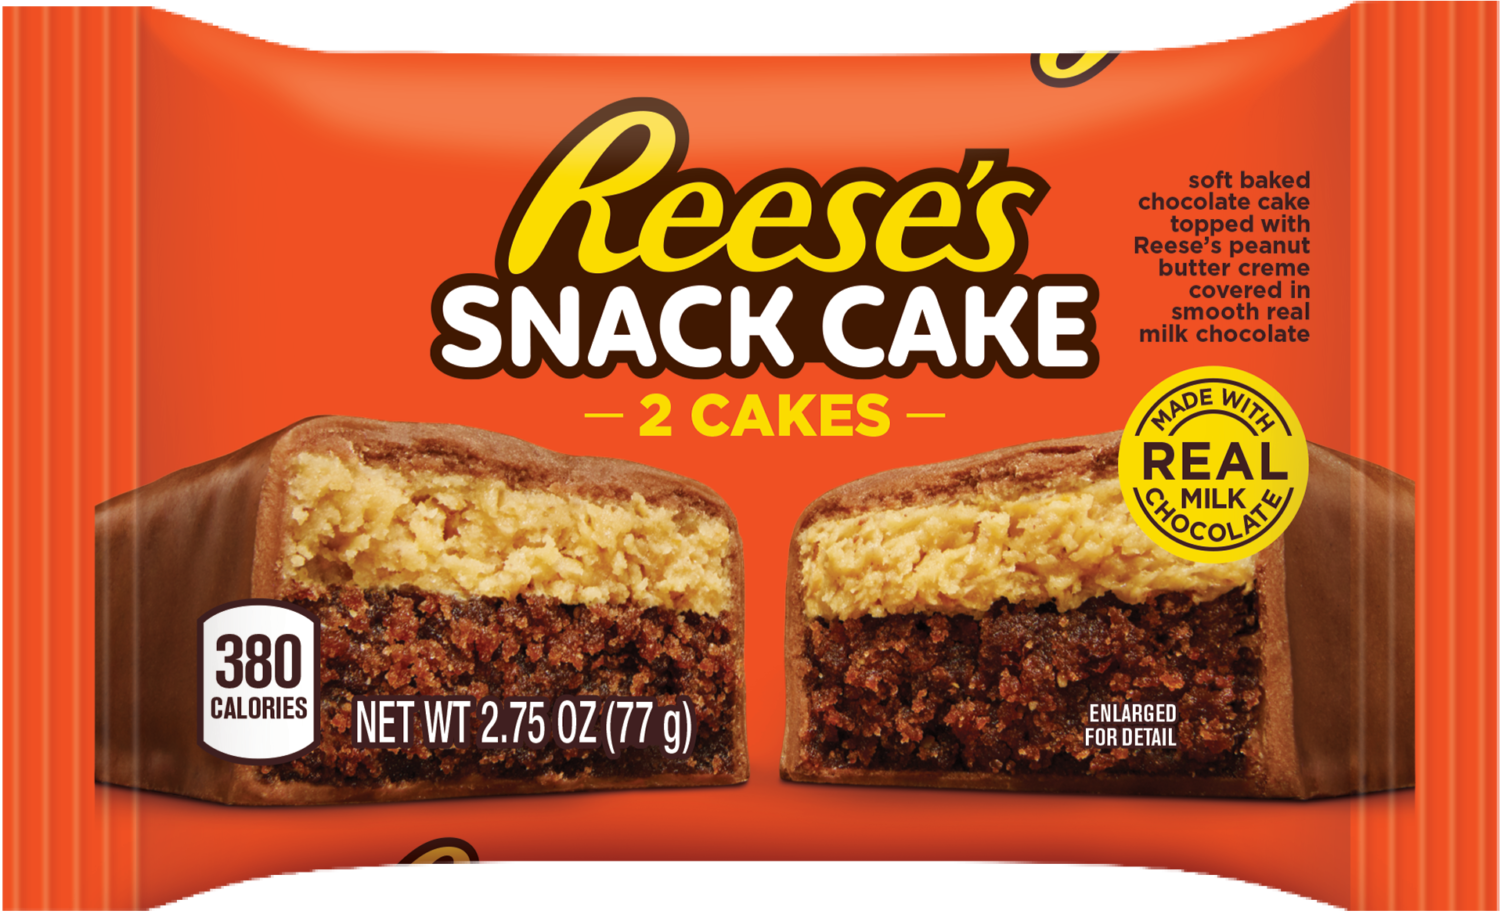 Reese's Is Launching New Ready-to-eat Desserts